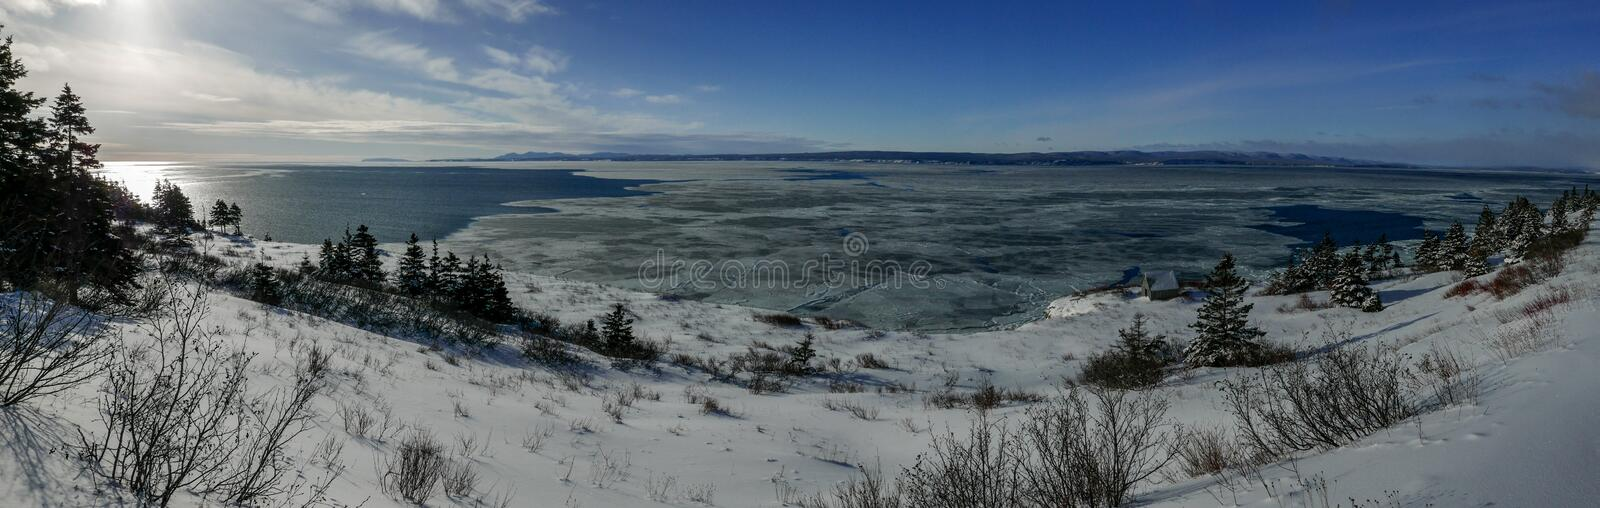 Panoramic view of the Bay of Gaspe taken from Cap Gaspe. Panoramic view of the Bay of Gaspe, Quebec, Canada on a sunny winter day taken from Cap Gaspe stock photo